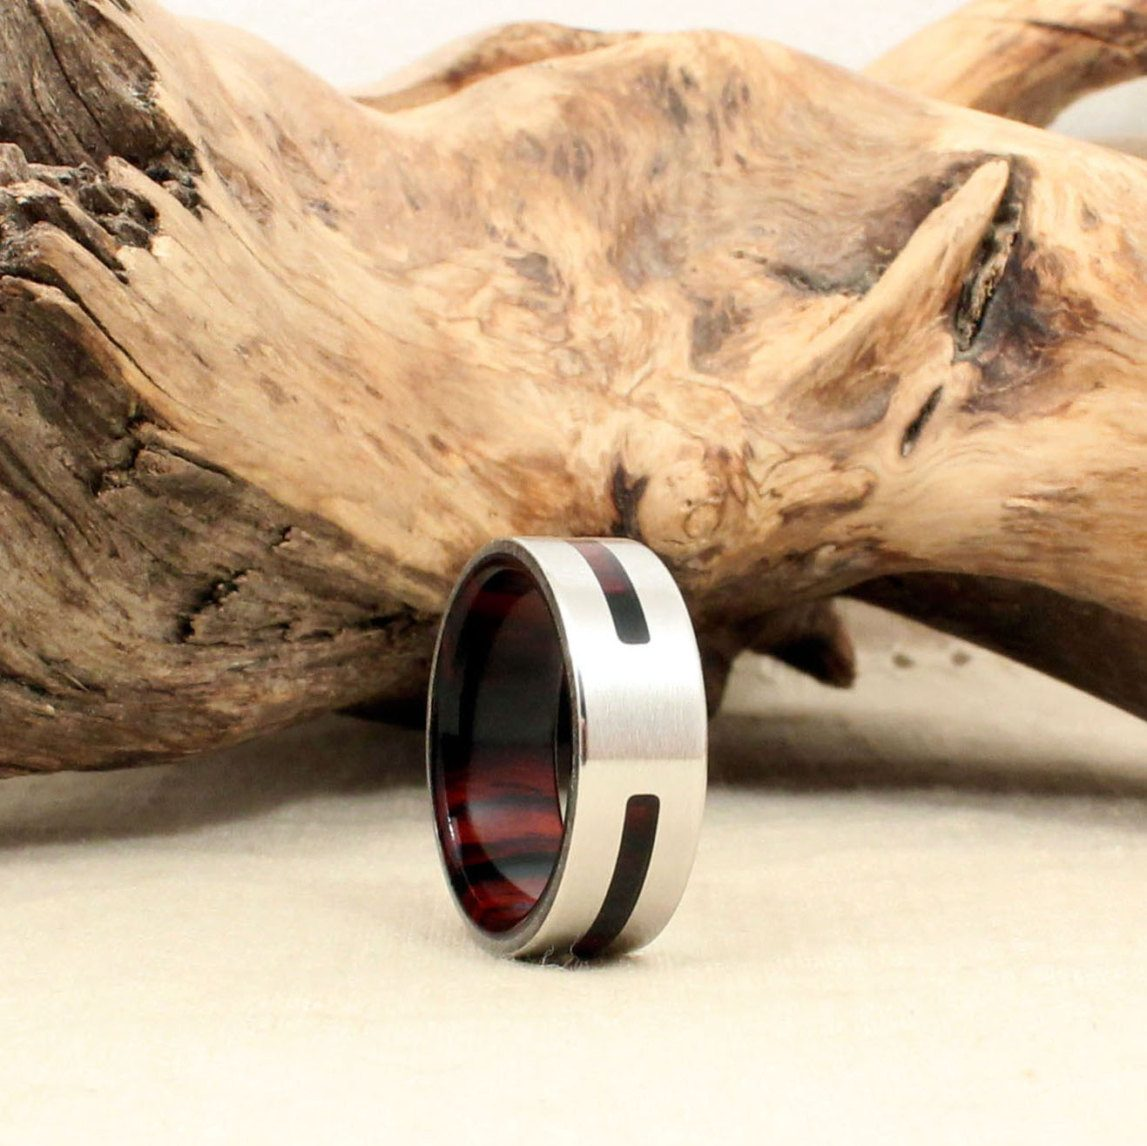 Cobalt Metal and Cocobolo Wood Wedding Ring by Wedgewood Rings